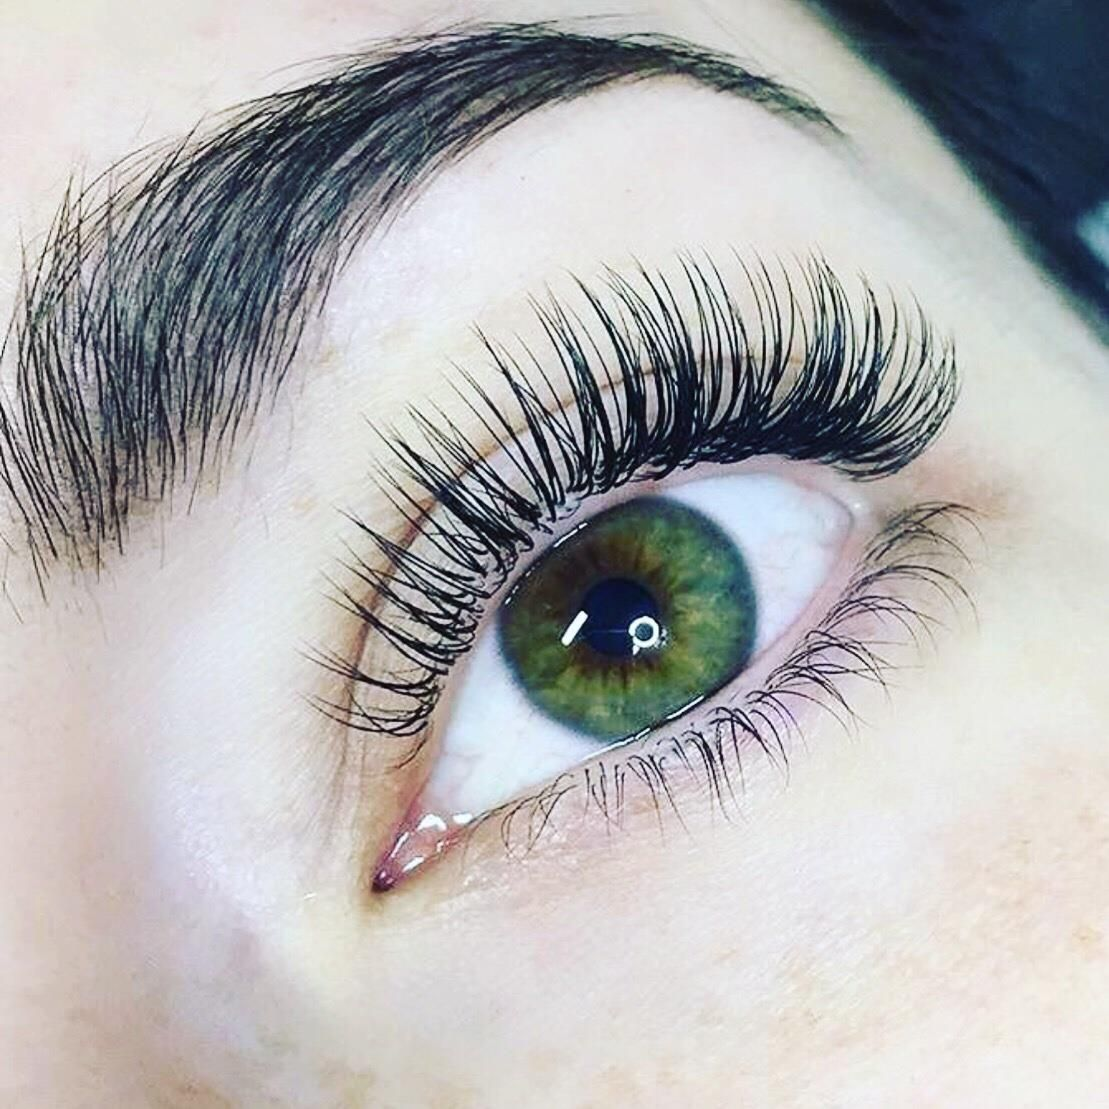 how to take off eyelash extensions at home with vaseline